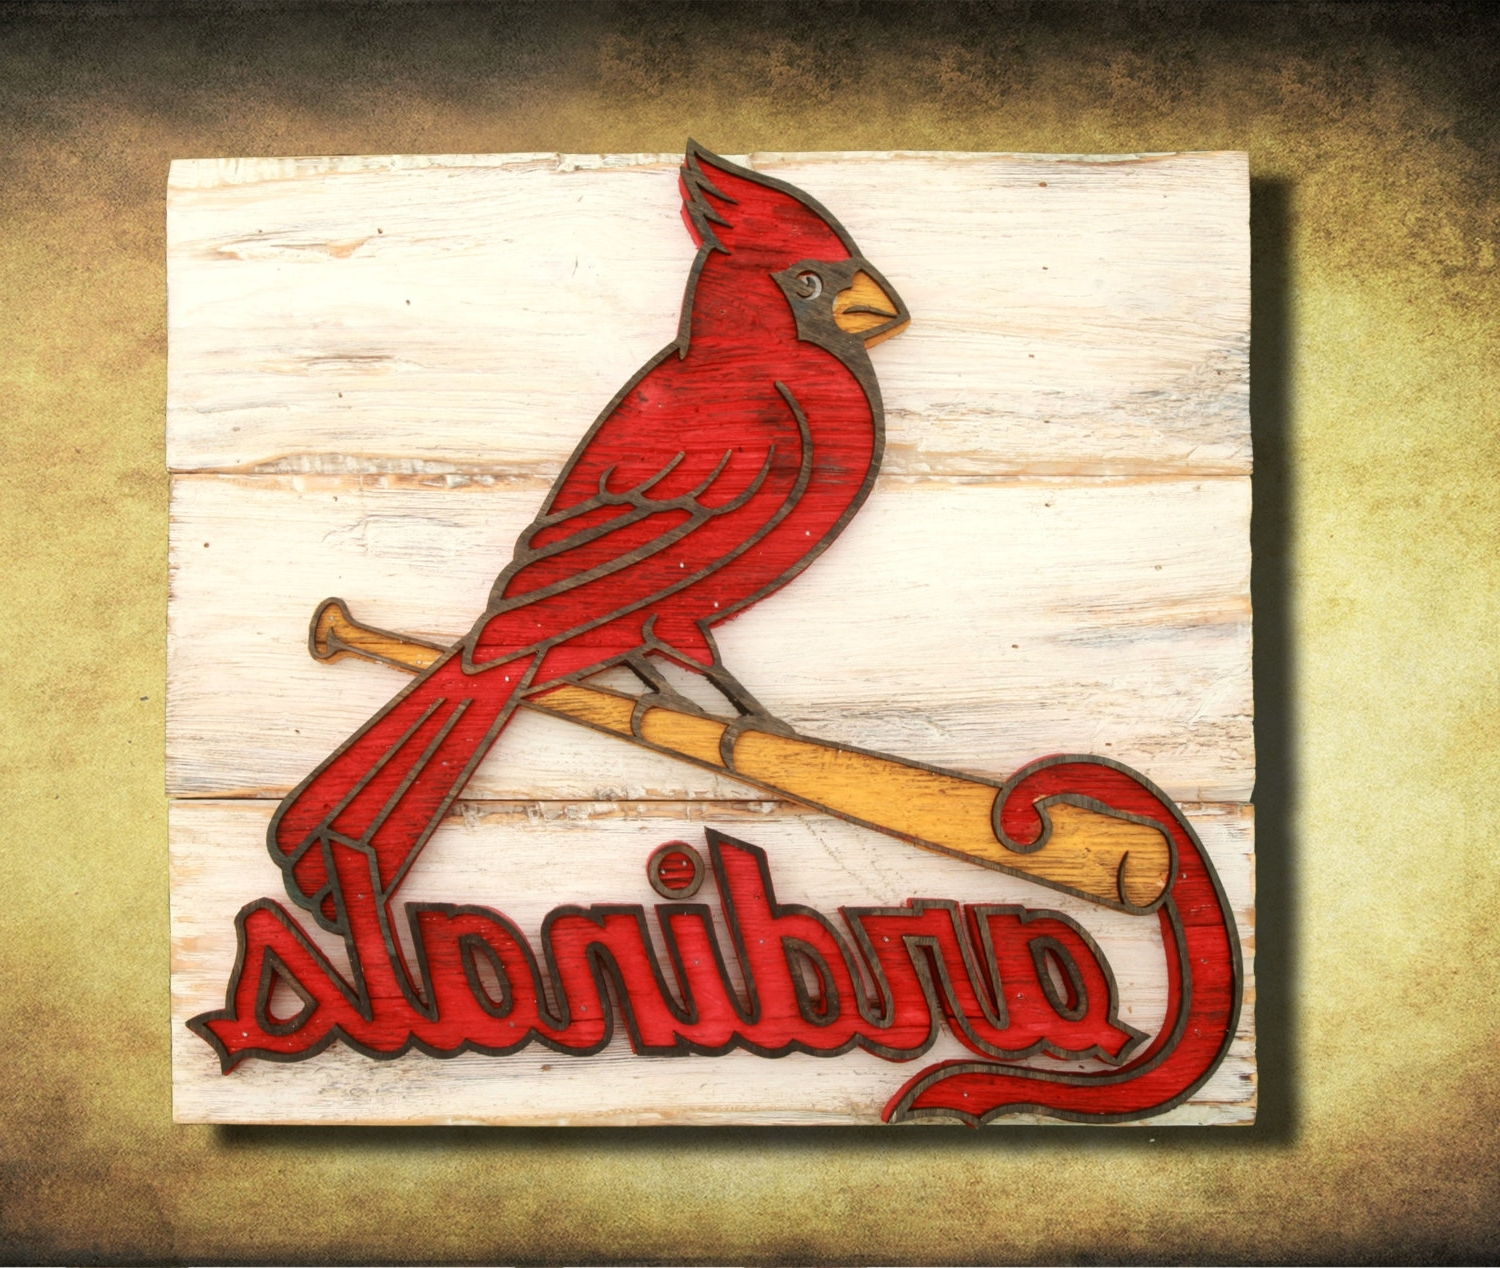 Baseball Wall Art Regarding Most Up To Date Saint Louis Cardinals Handmade Distressed Wood Sign, Vintage, Art (Gallery 9 of 20)